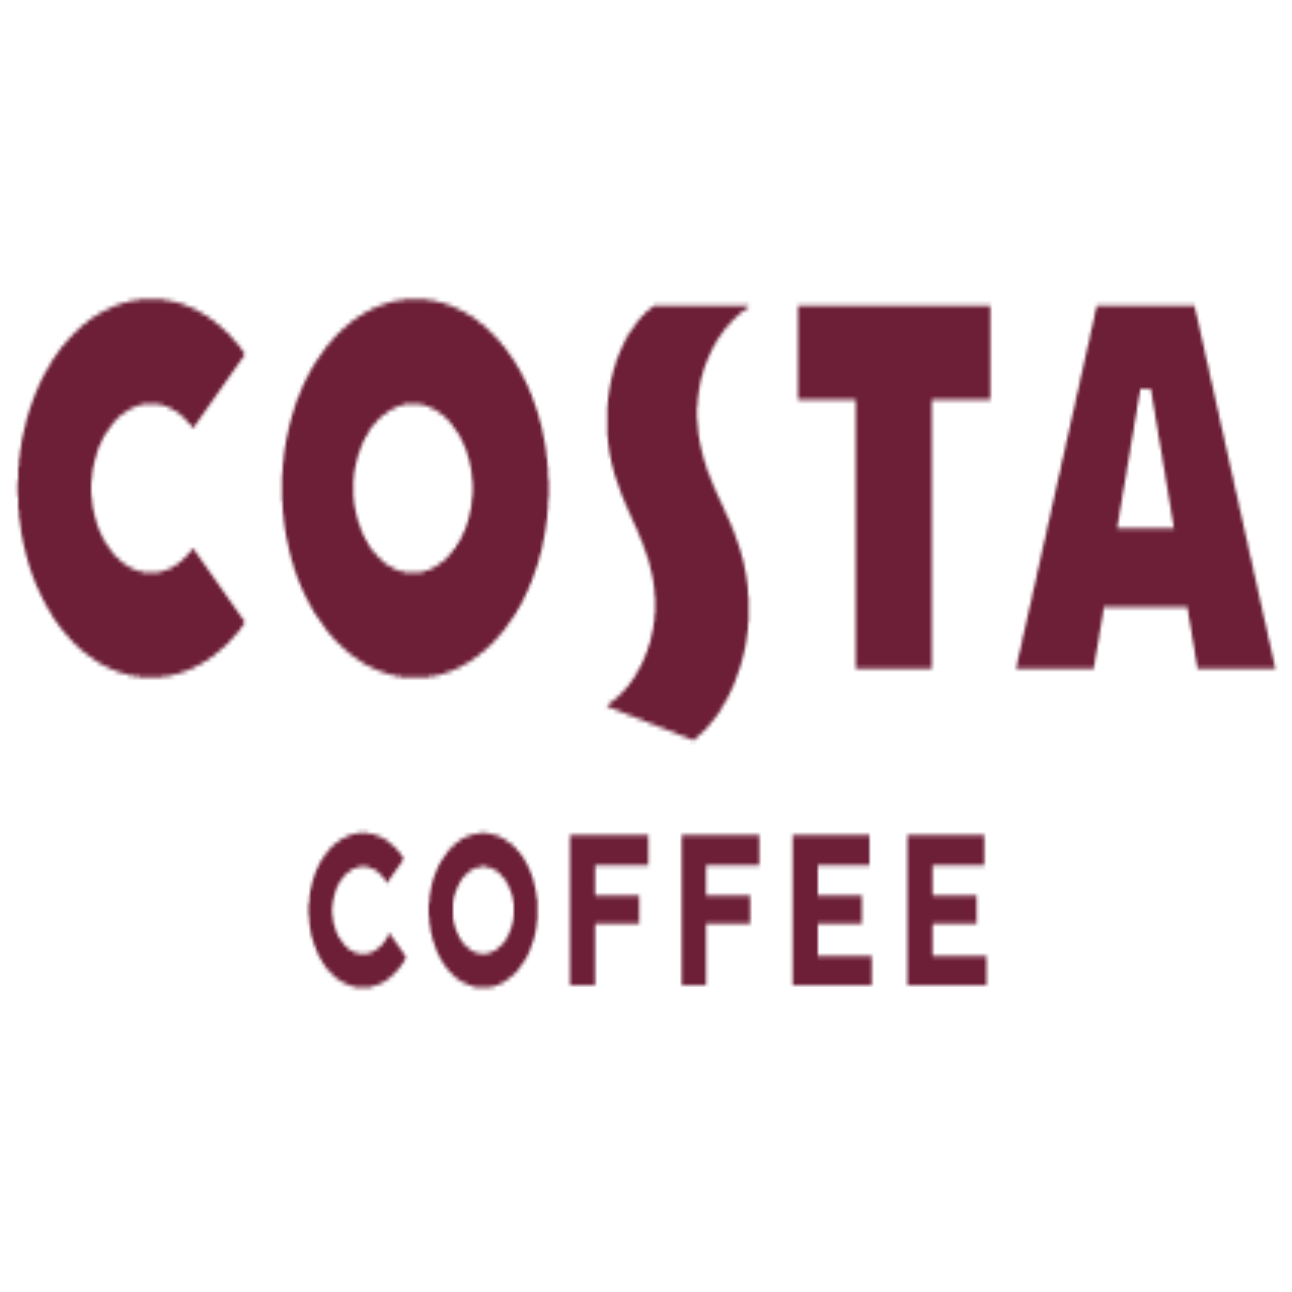 10% off at Costa